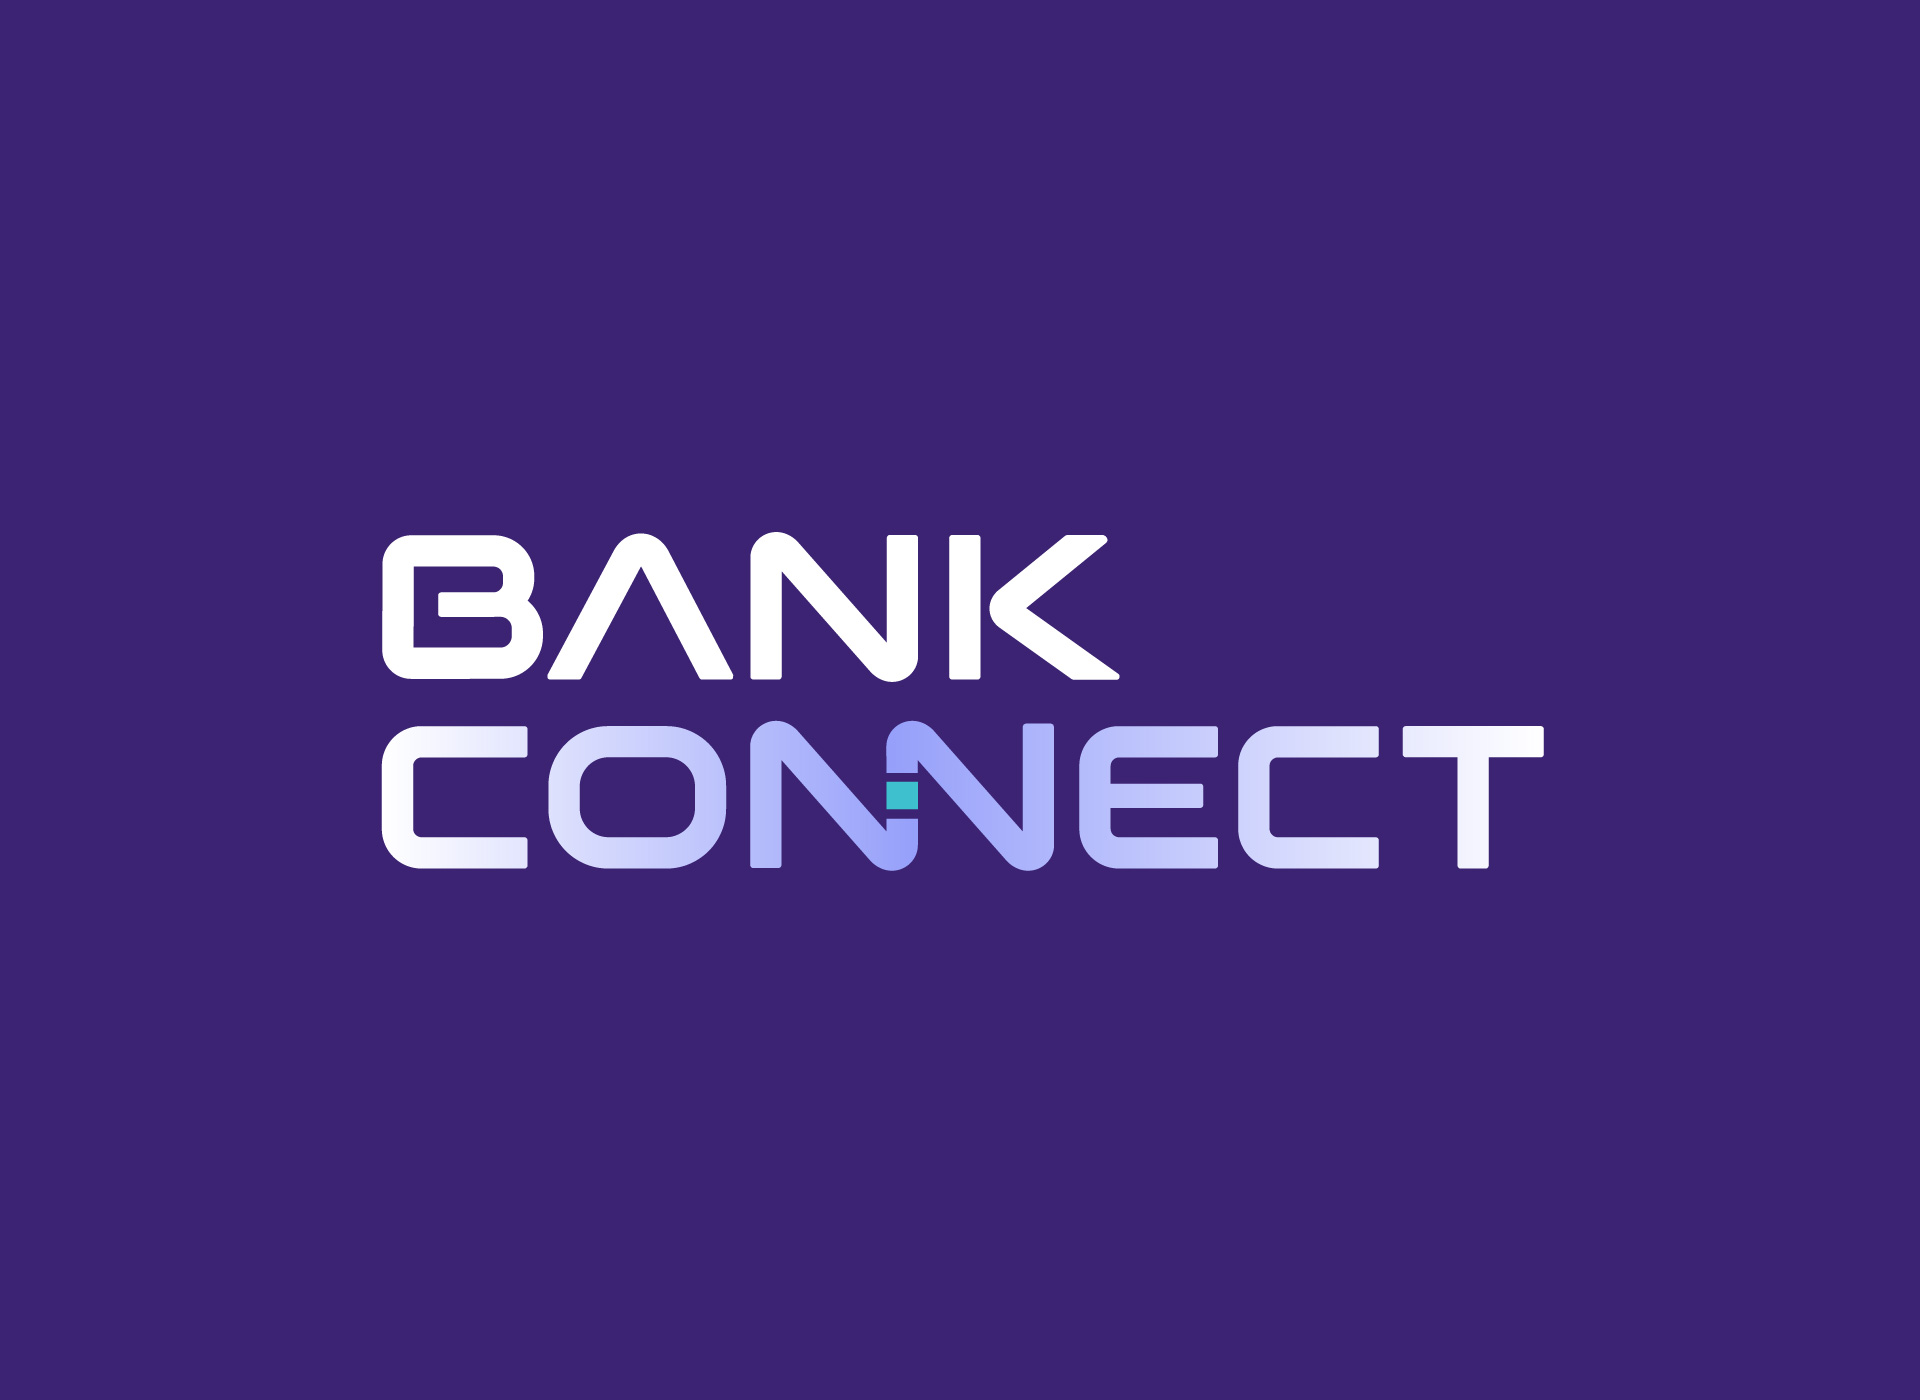 Bank Connect